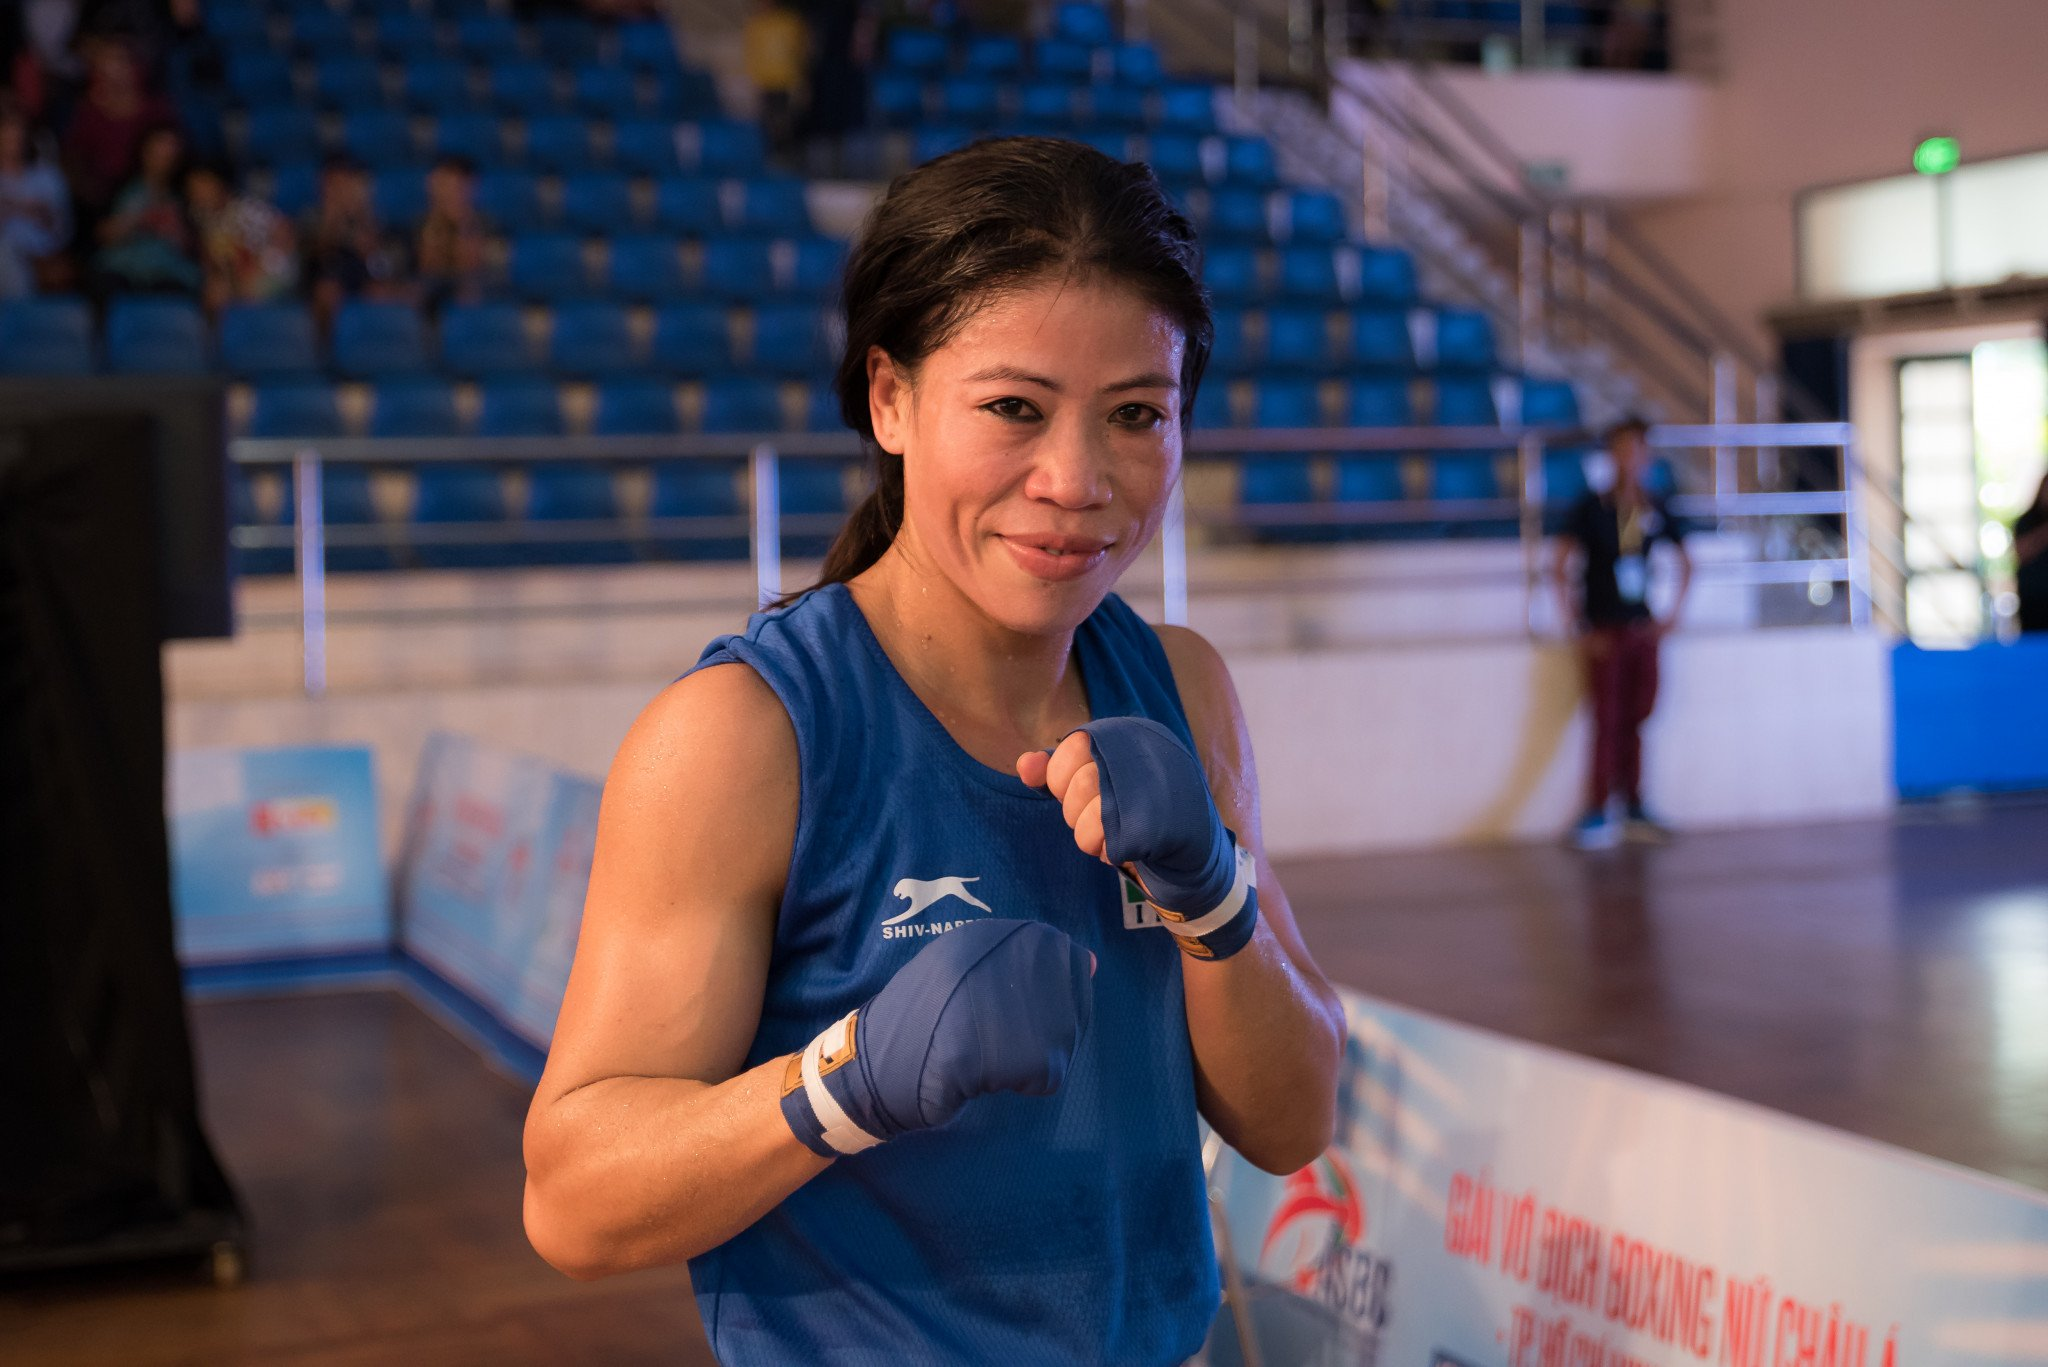 India's Olympic bronze medallist Mary Kom will miss the training camp in Italy due to illness ©AIBA